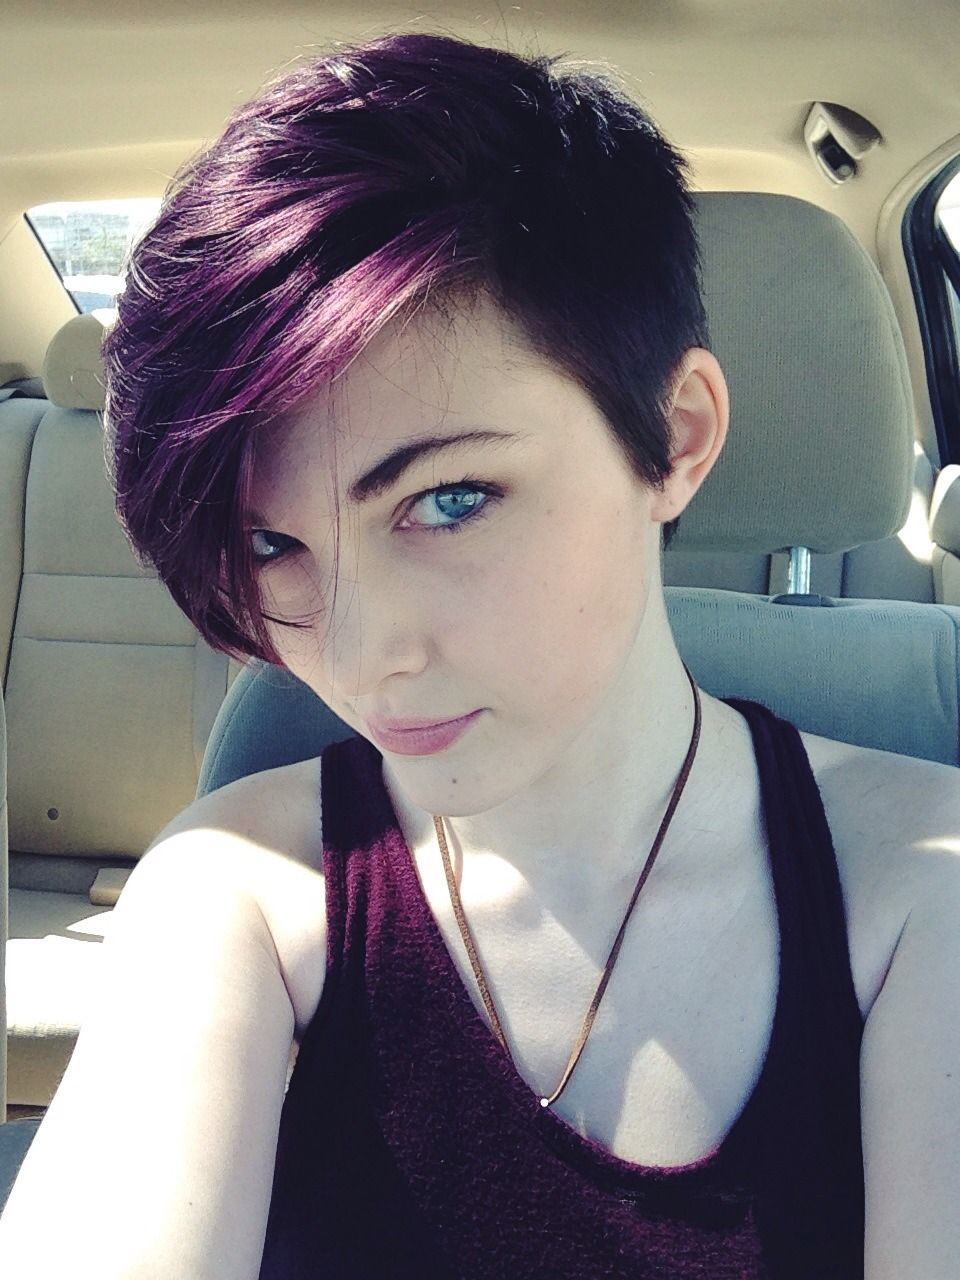 stylish hair color designs purple hair ideas to try saturday